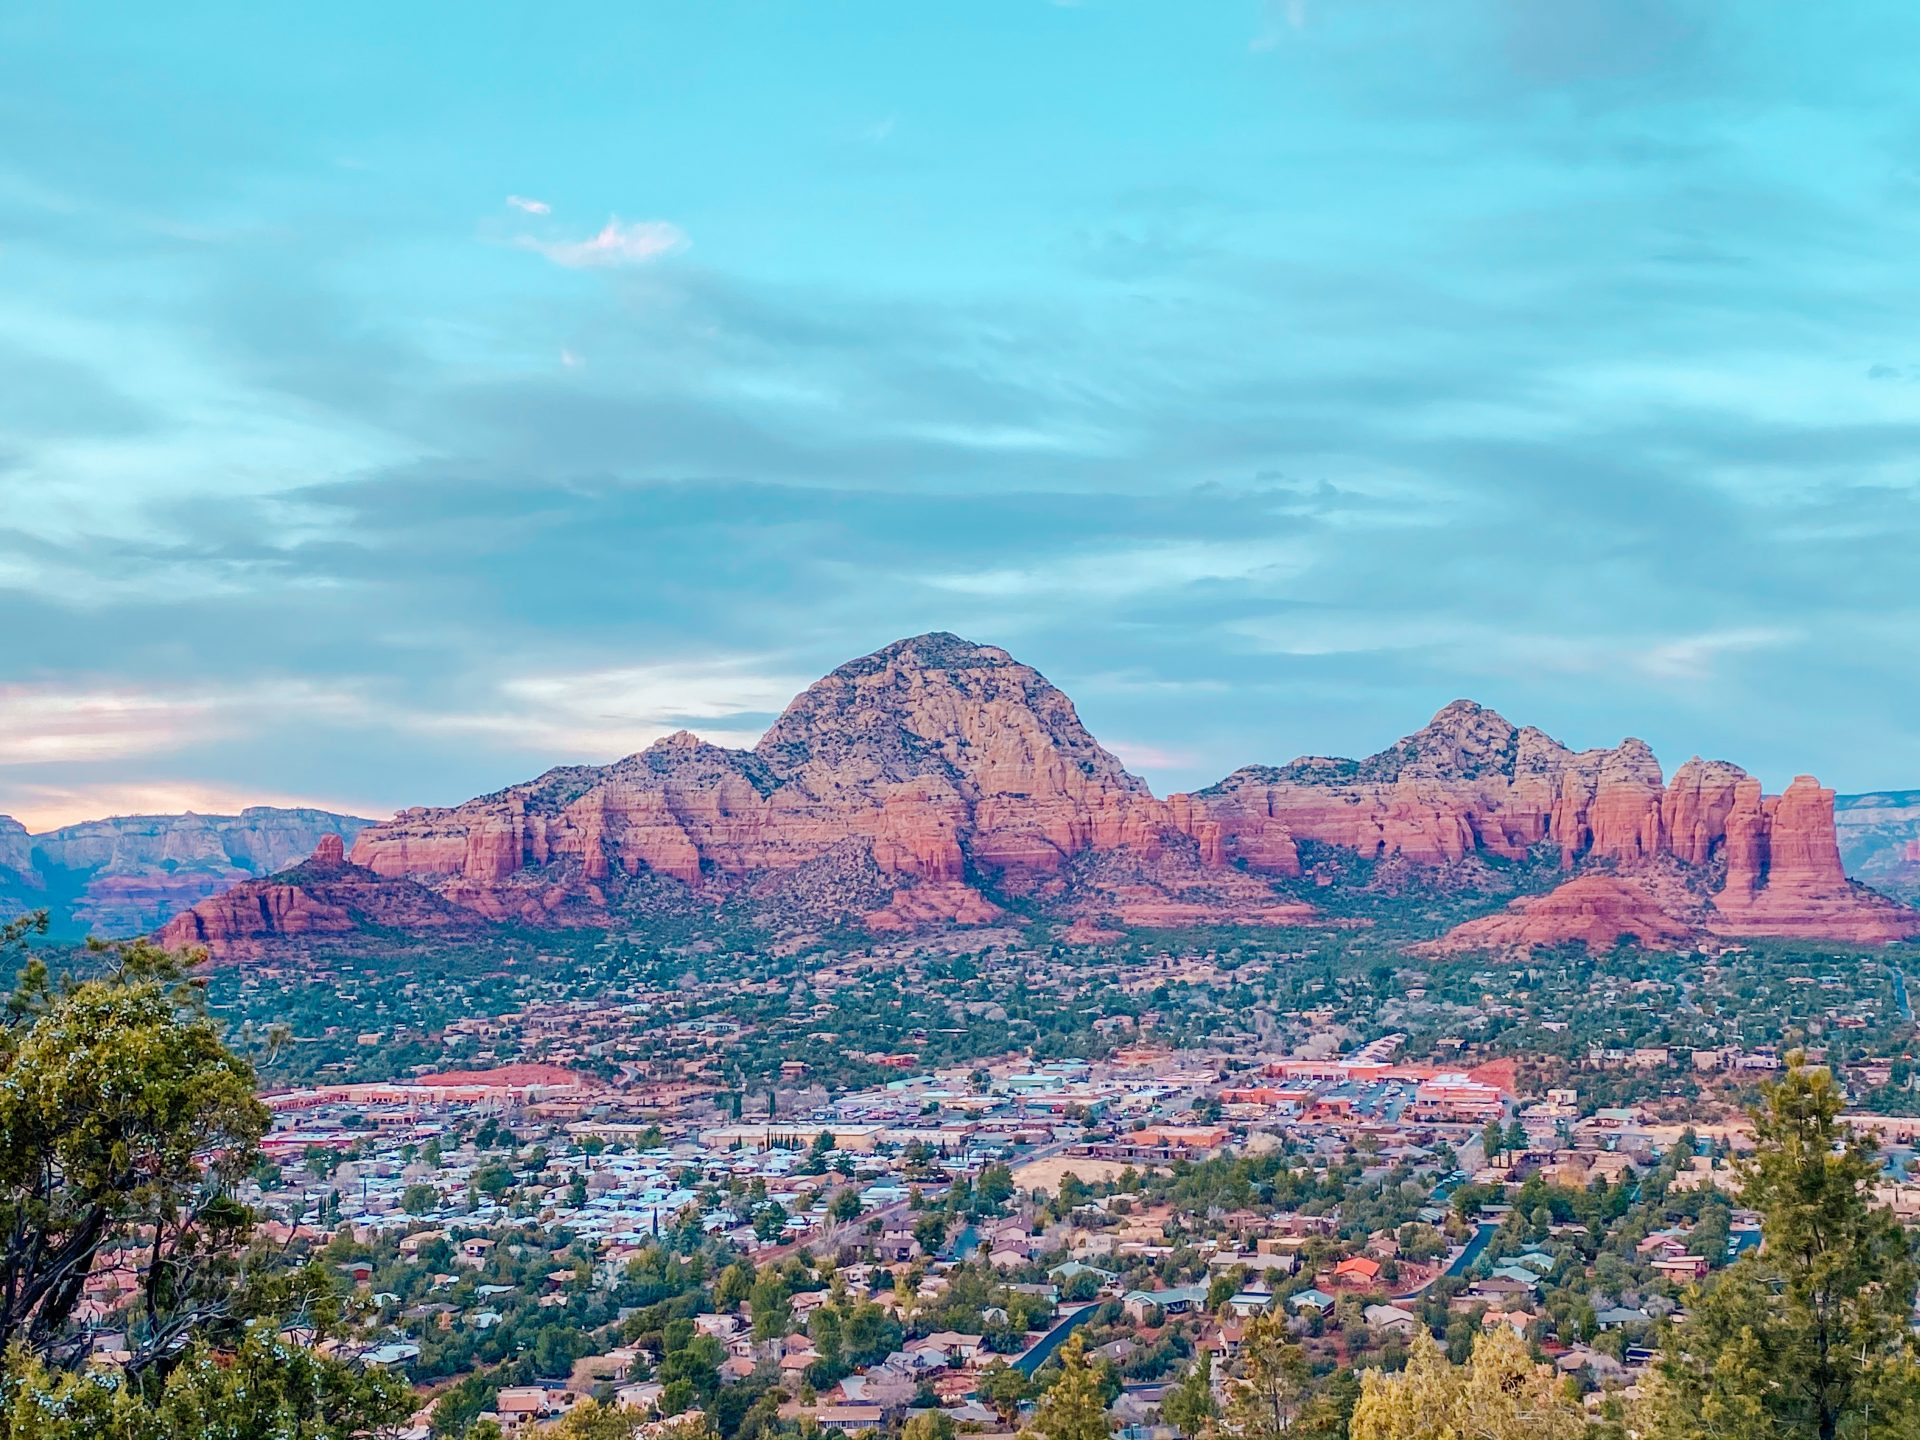 View out over Sedona Arizona close to sunset. View of the city and red rocks in the distance as the light is dwindling.